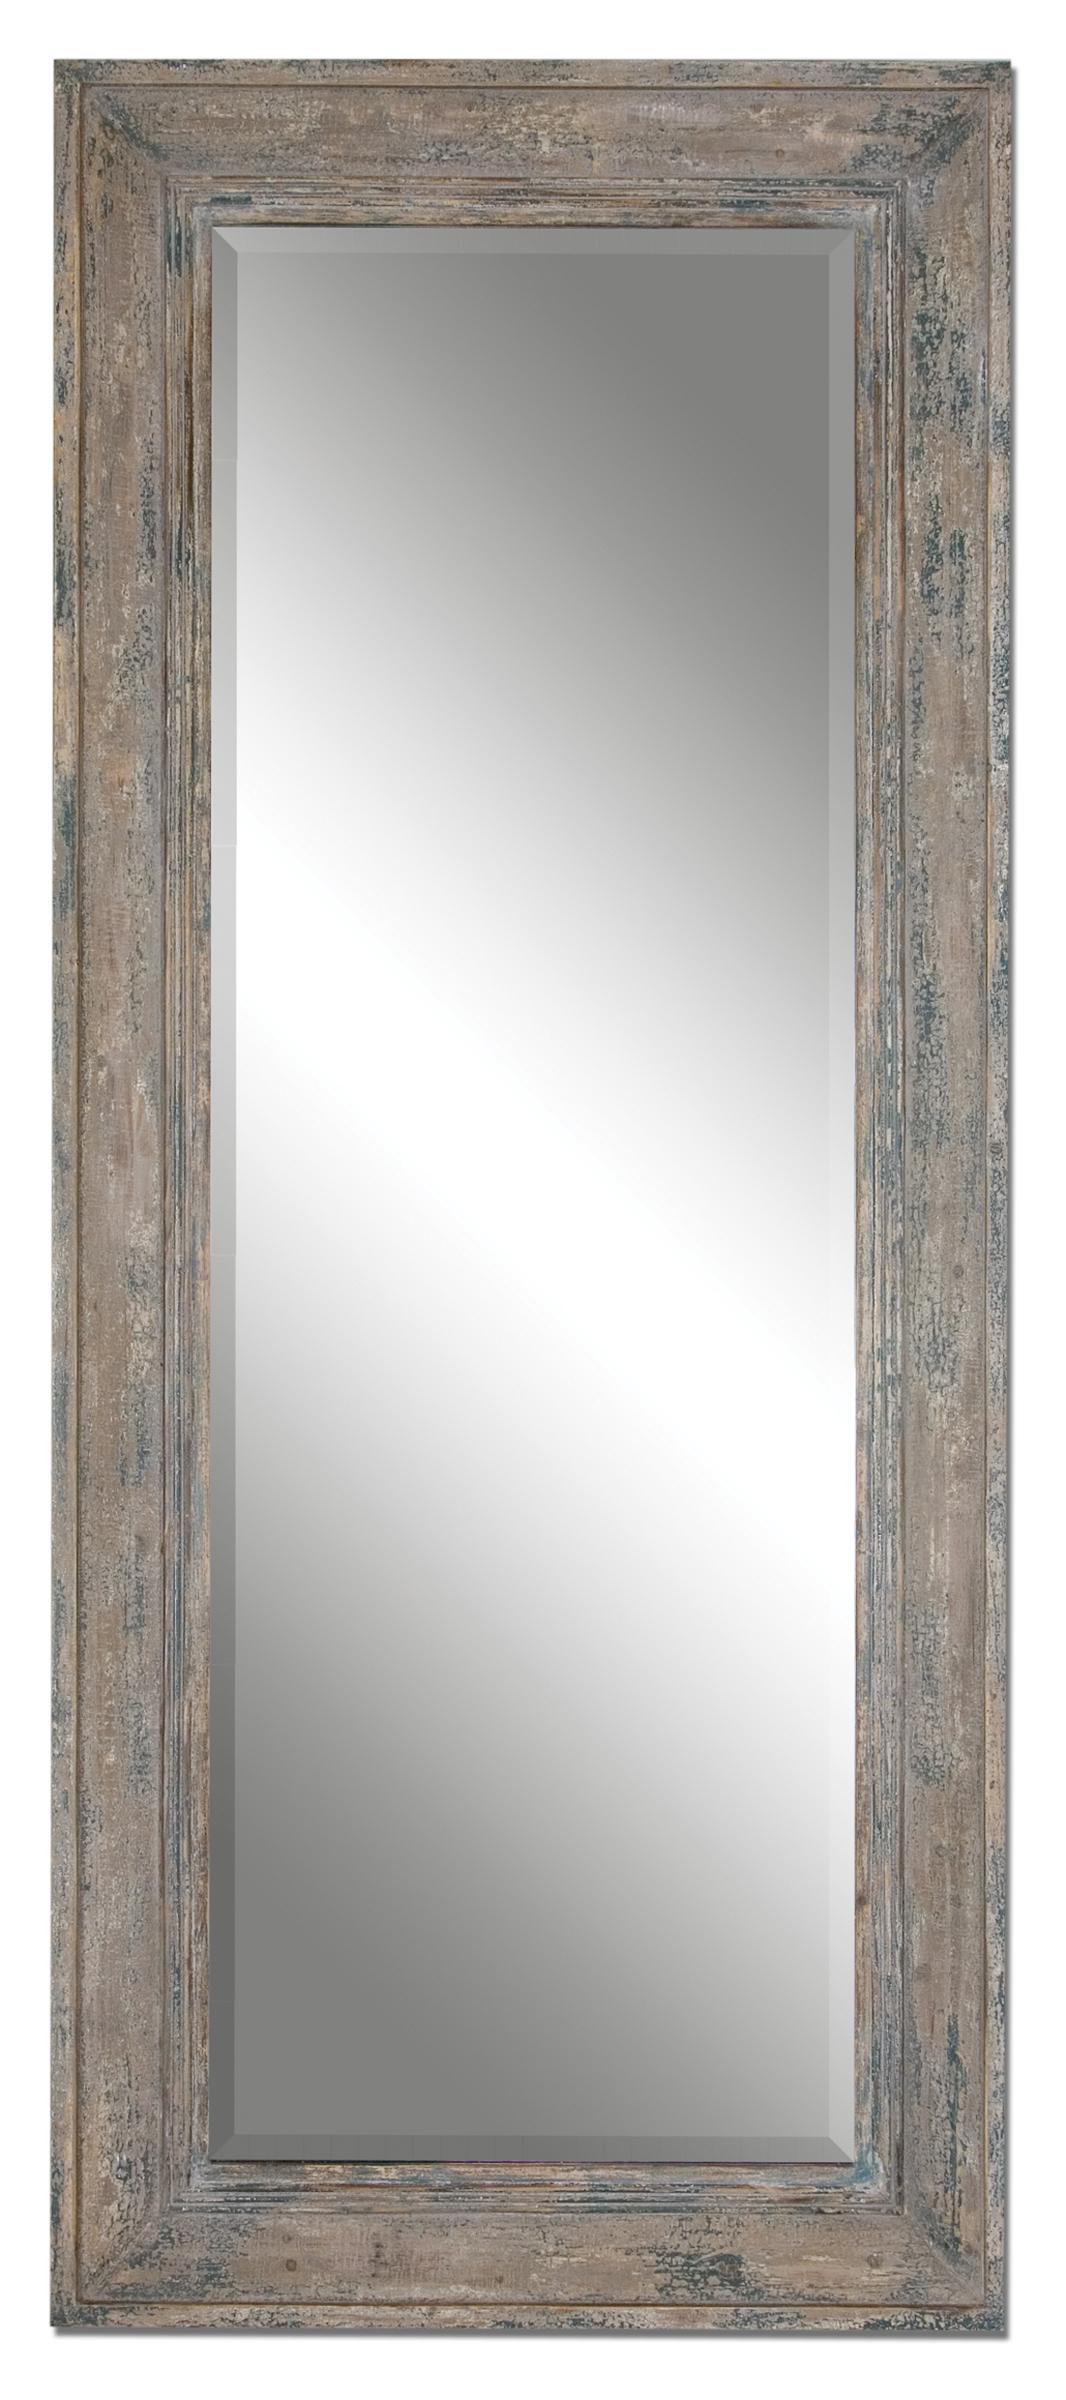 Uttermost Mirrors Missoula - Item Number: 13830